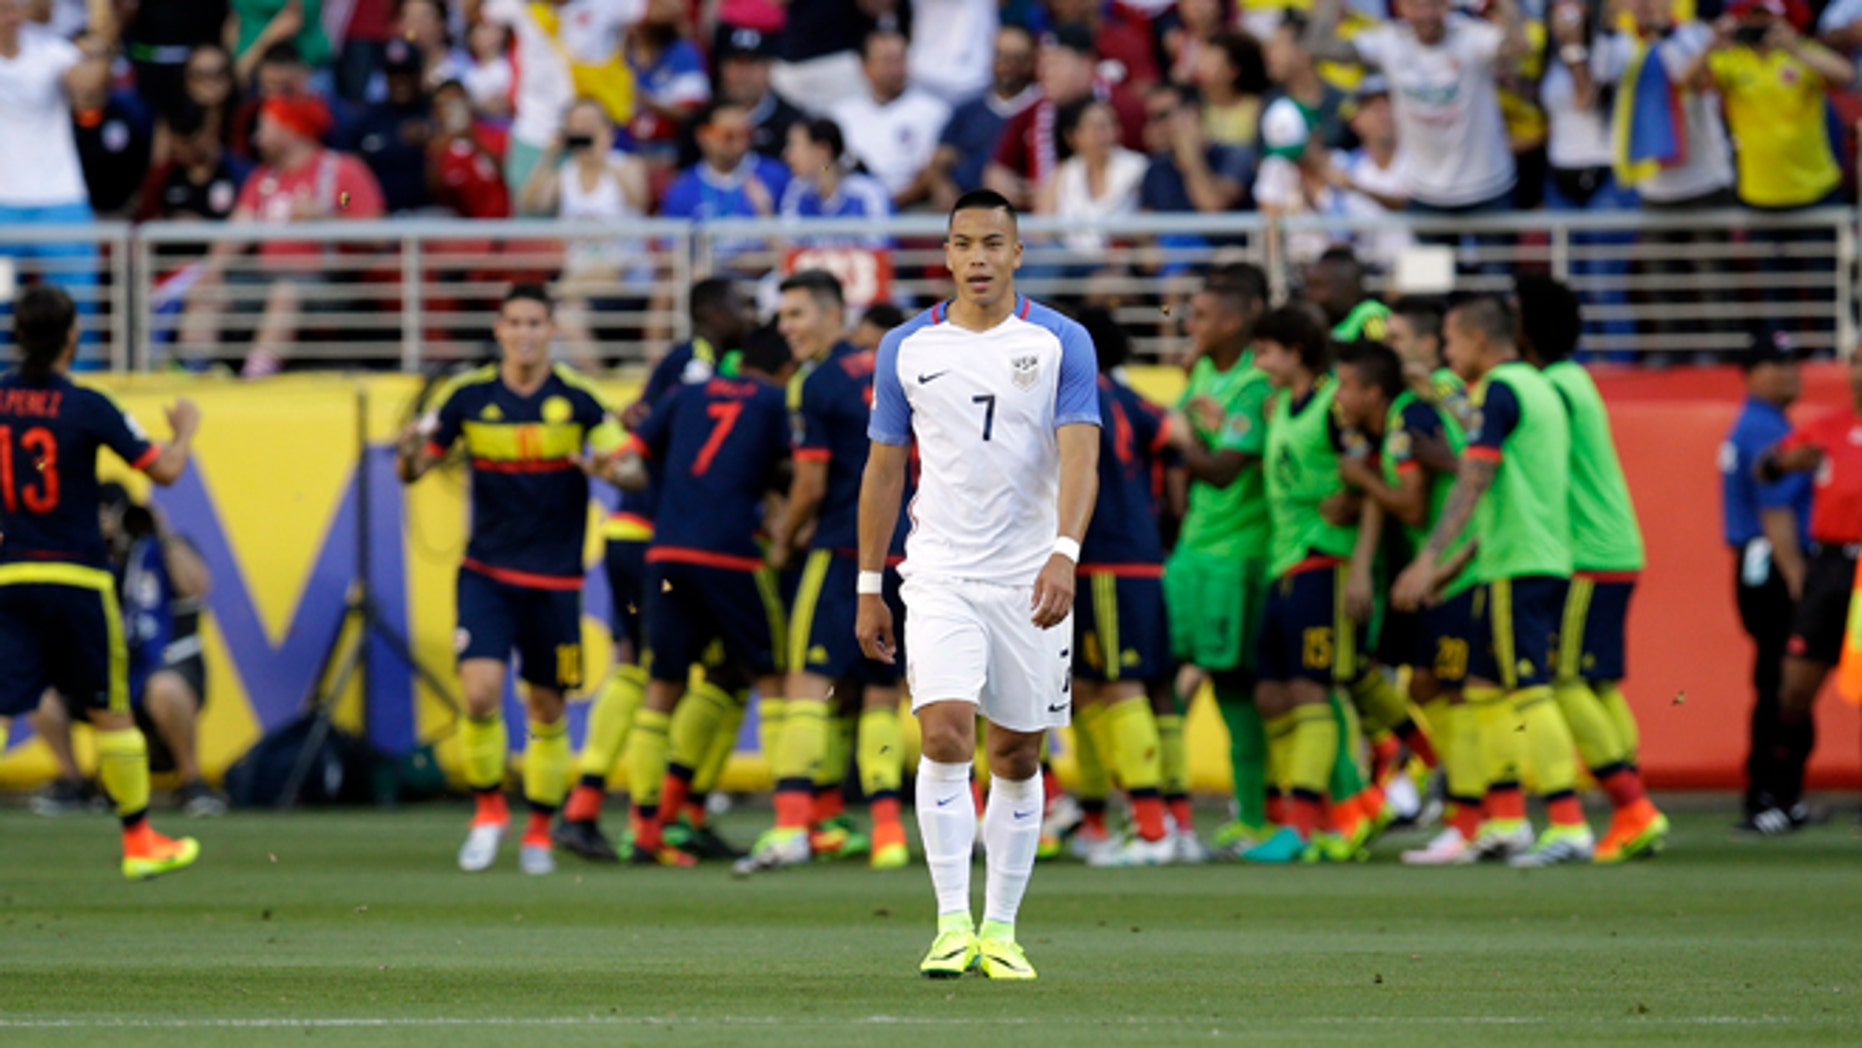 Colombia's players celebrate after scoring their first goal as United States' Bobby Wood, center, walks away during a Copa America Centenario Group A soccer match at the Levi's Stadium in Santa Clara, Calif., Friday, June 3, 2016. Colombia scored 2 first-half goals beating the US in the opener of the Copa America.(AP Photo/Marcio Jose Sanchez)